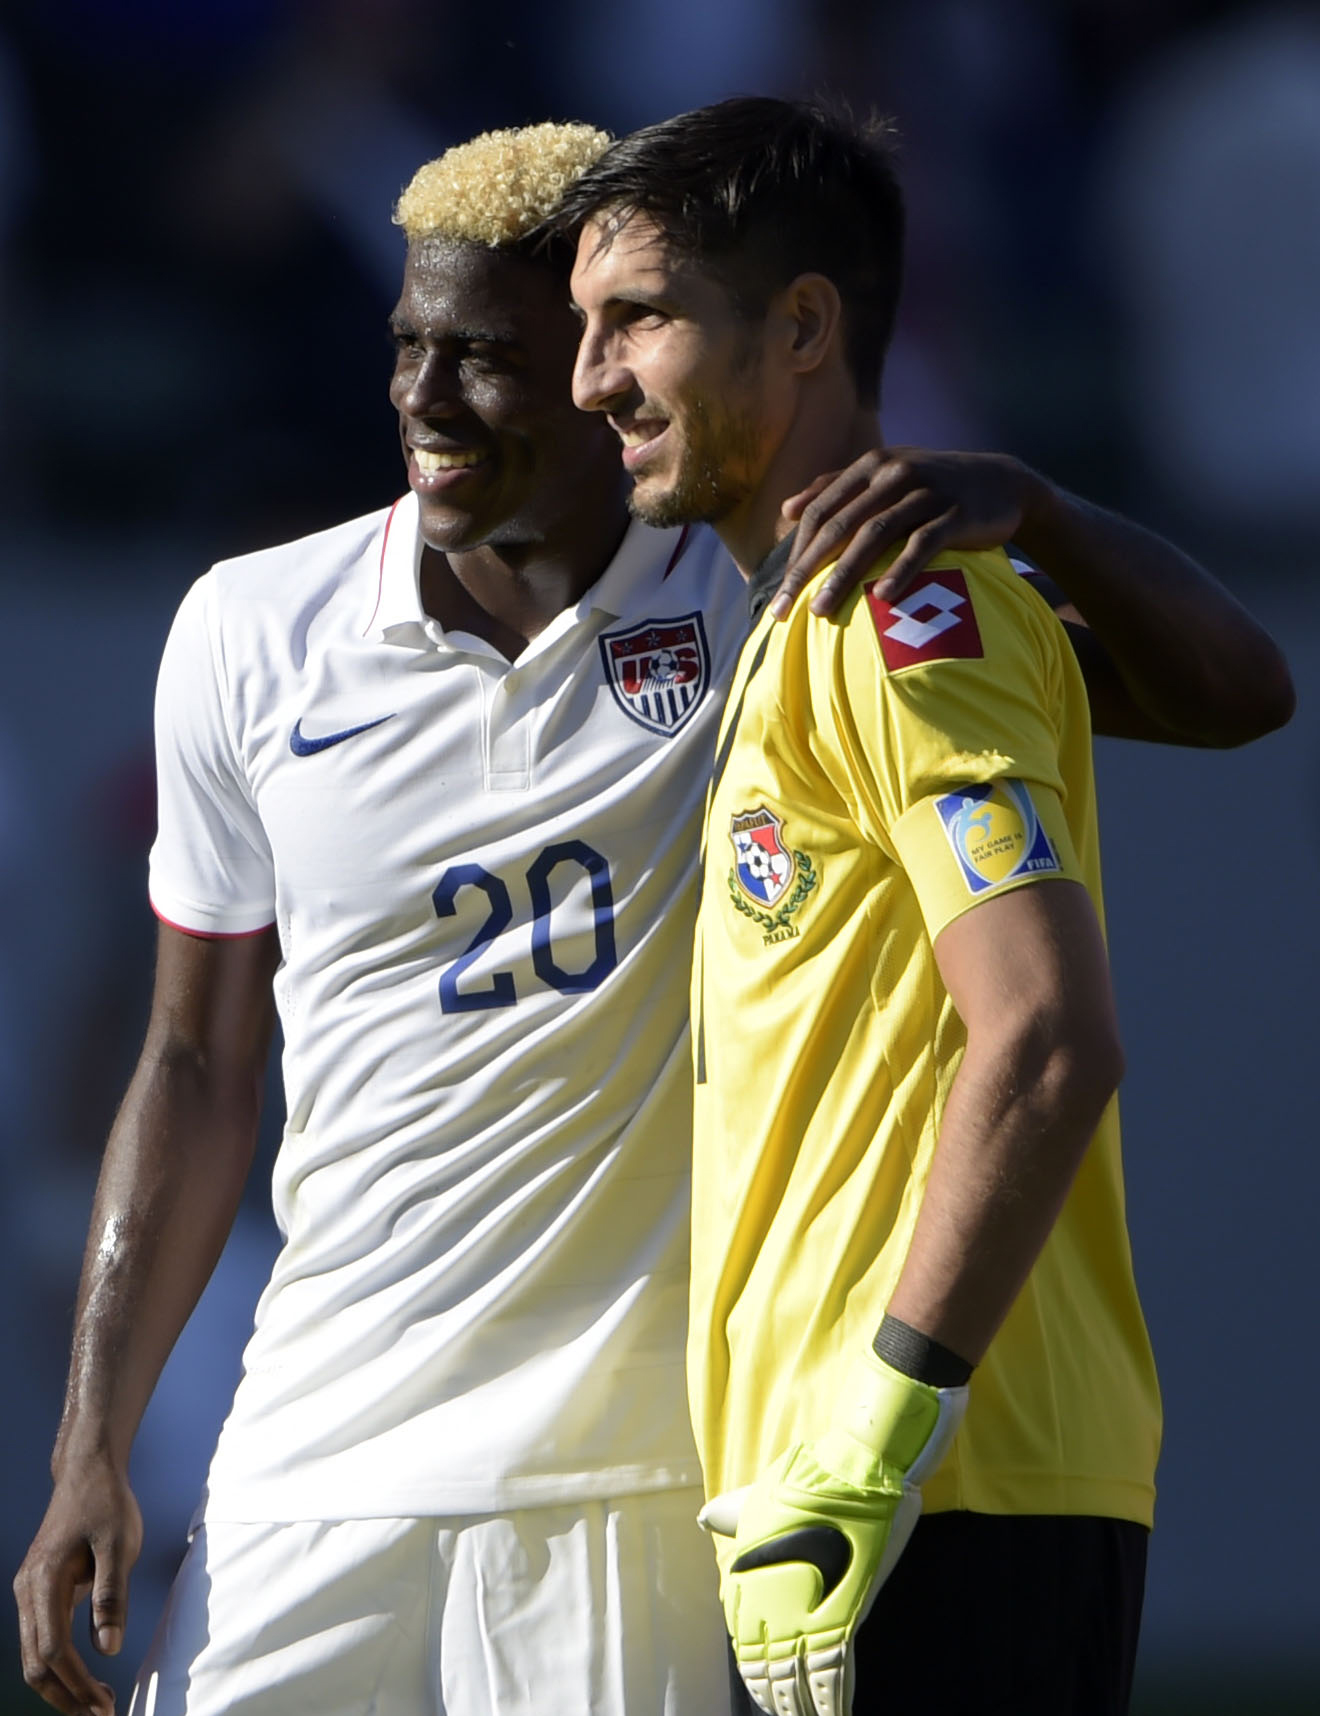 LA Galaxy teammates Gyasi Zardes (left) and Jaime Penedo might be smiling now, but how about next week when the USA plays Panama?